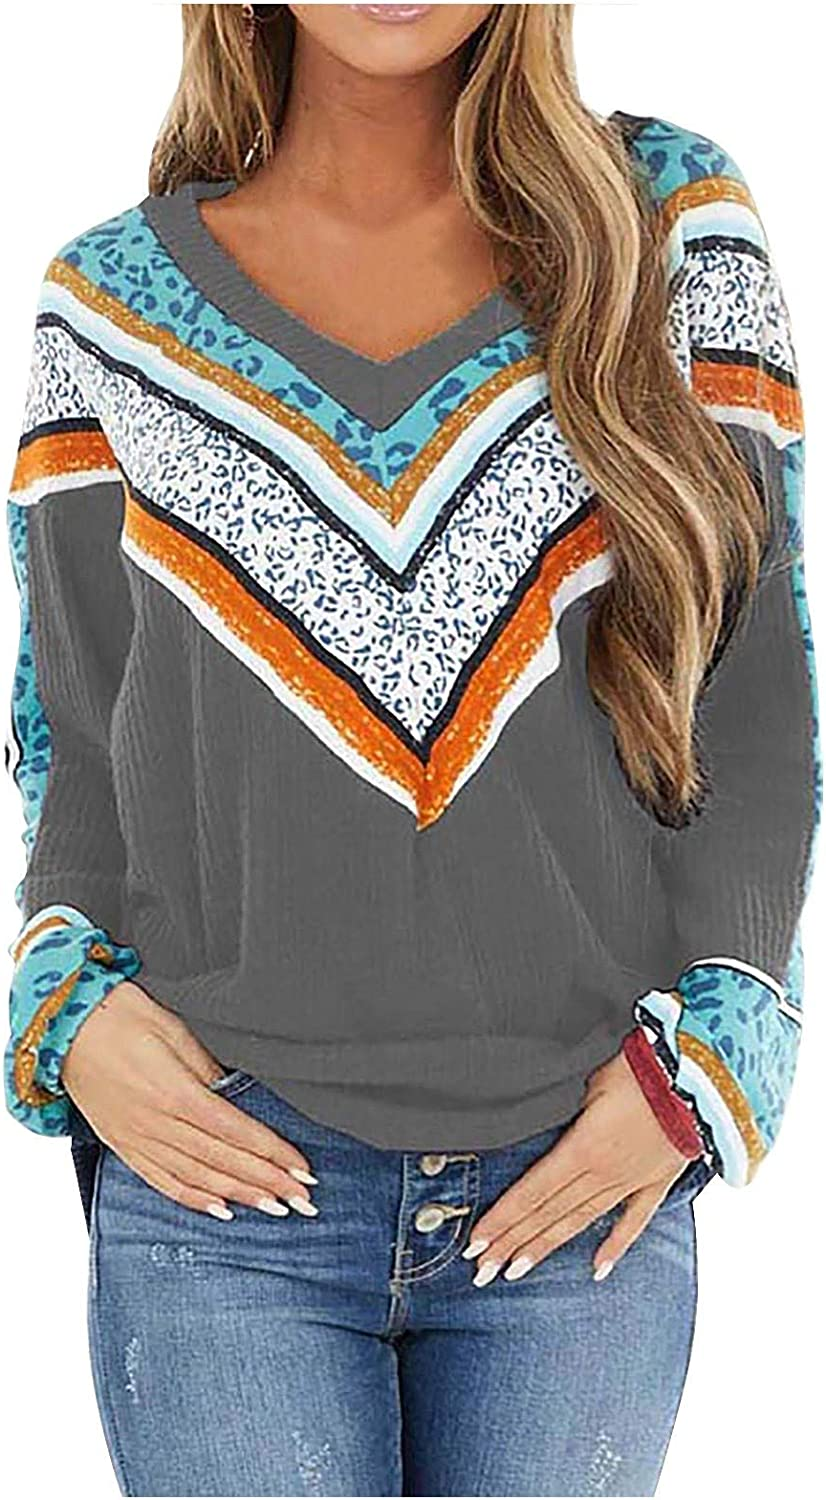 Women's Casual Ethnic Knit Sweater V Neck Loose Pullover Tops Long Sleeve Winter Knitting Tops